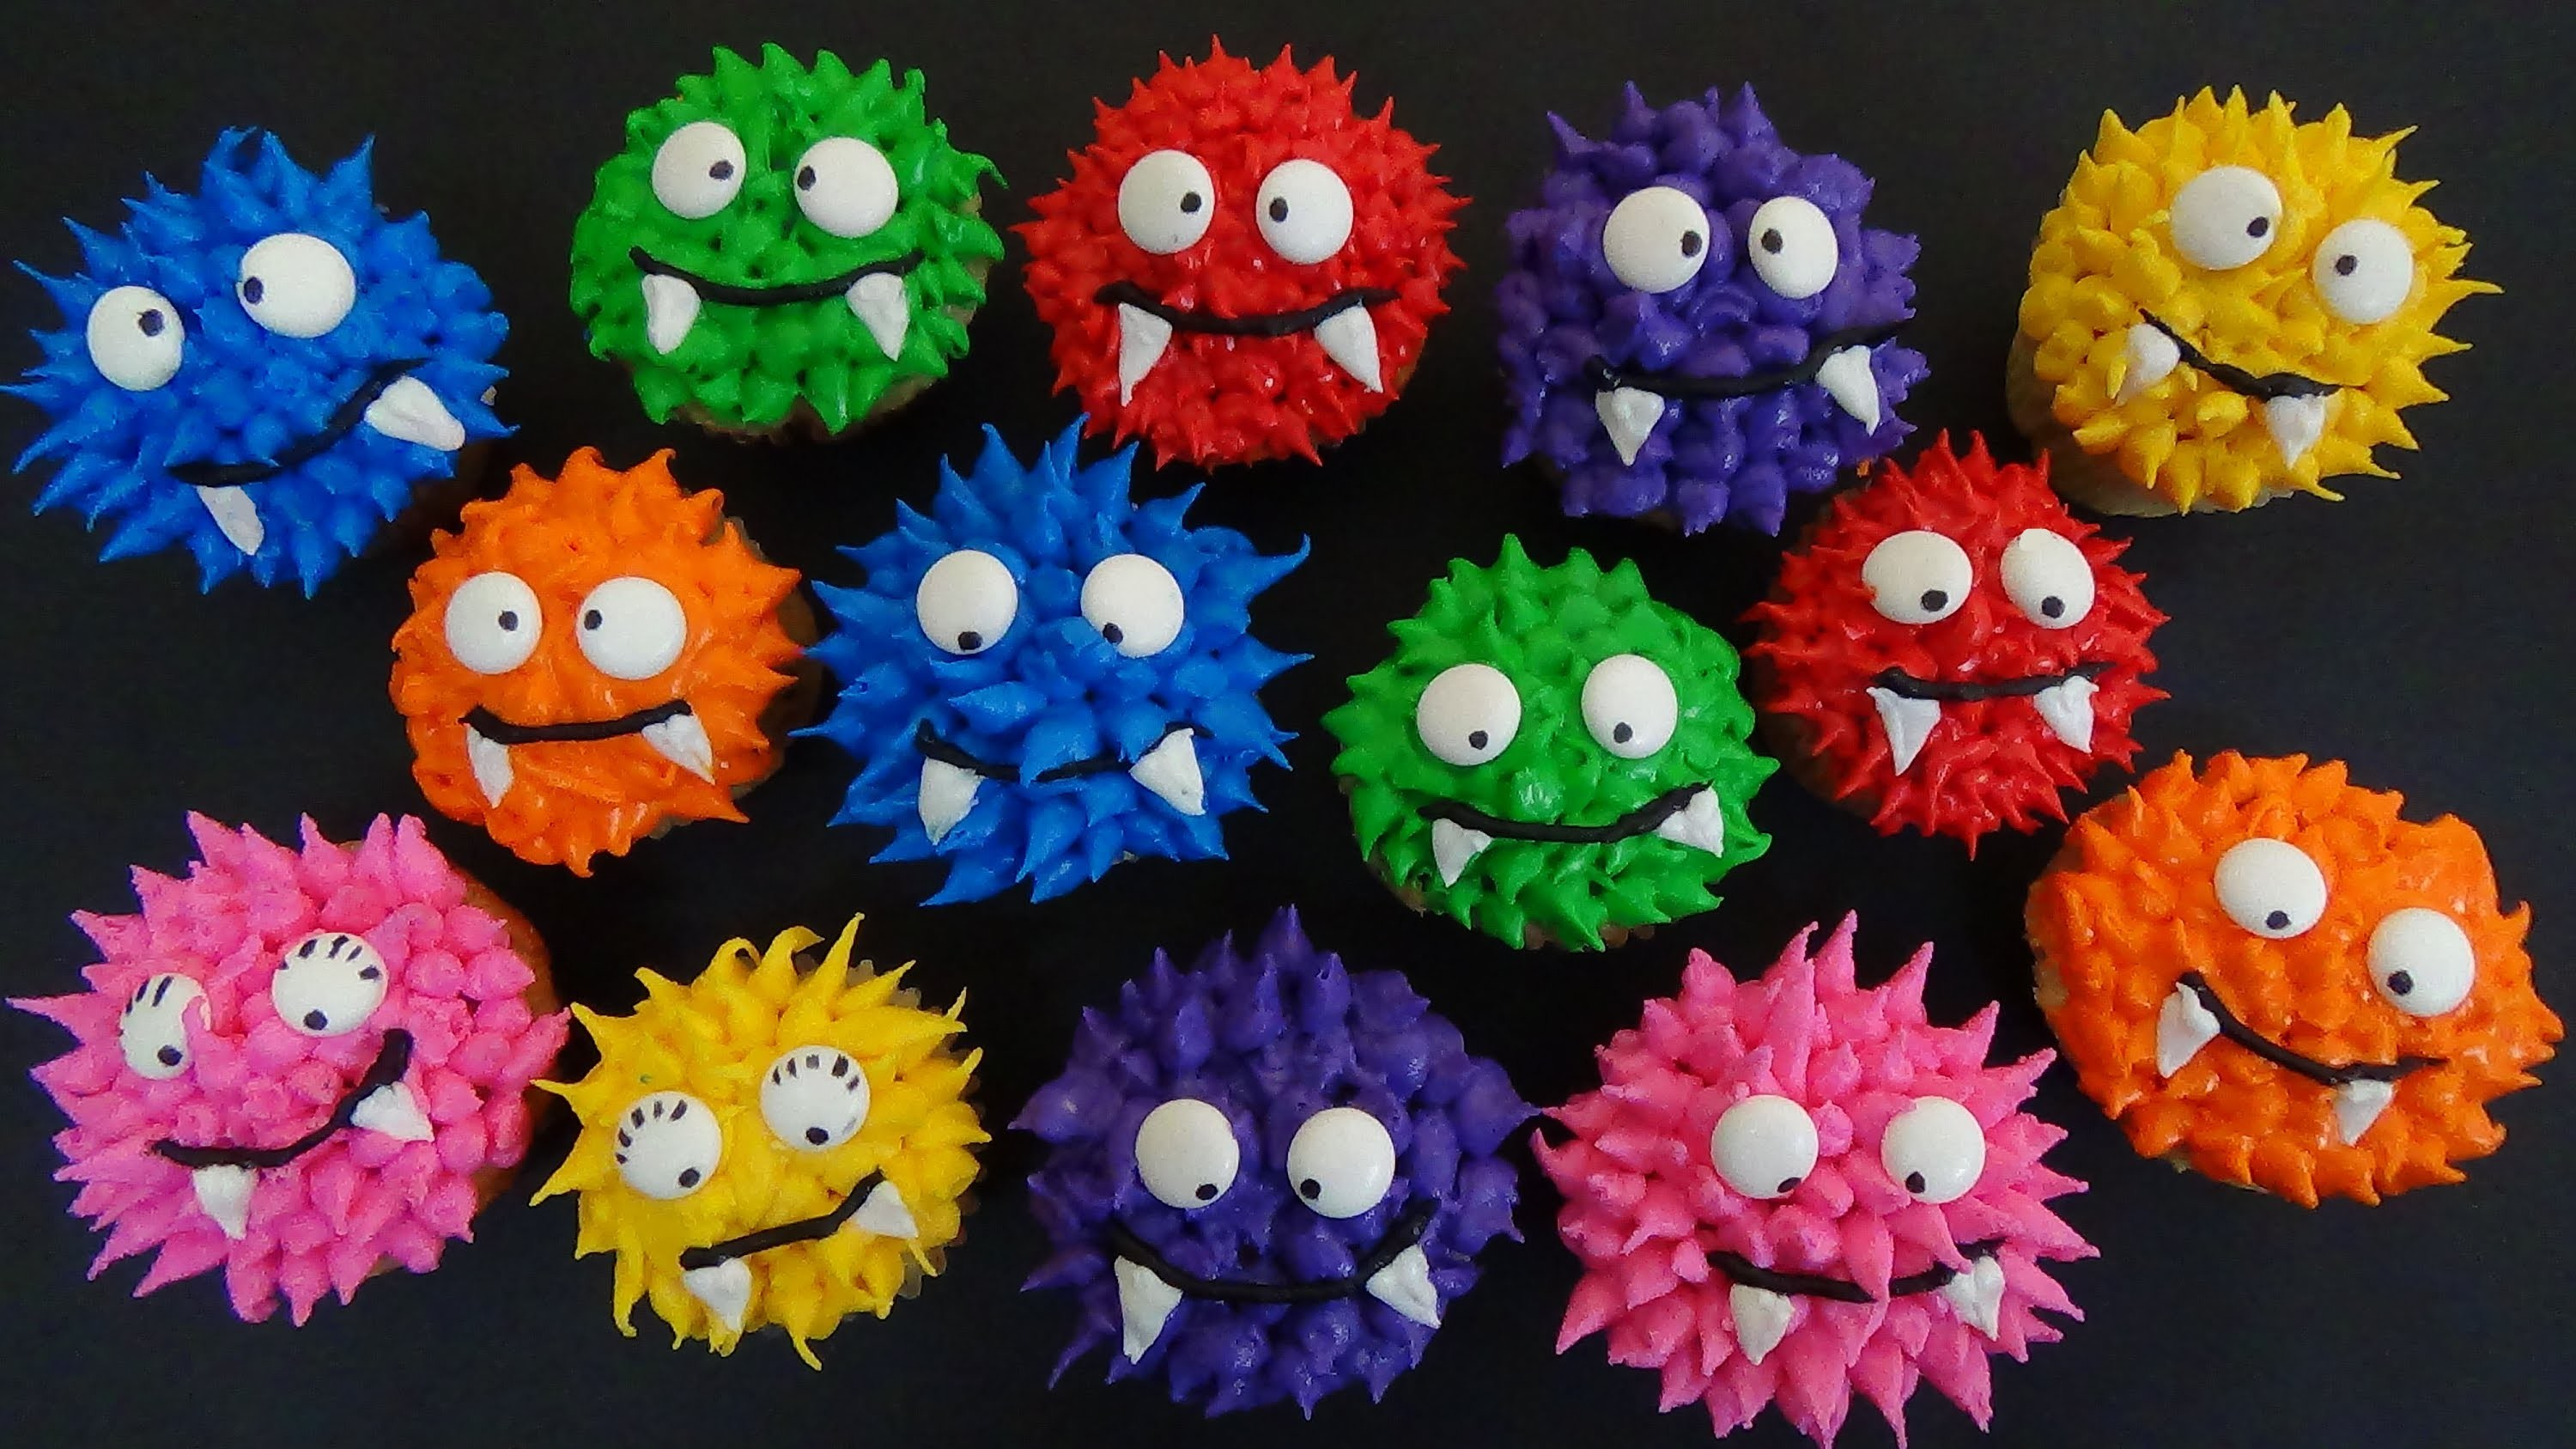 How to make choc banana muffins and decorate as mini rainbow monsters